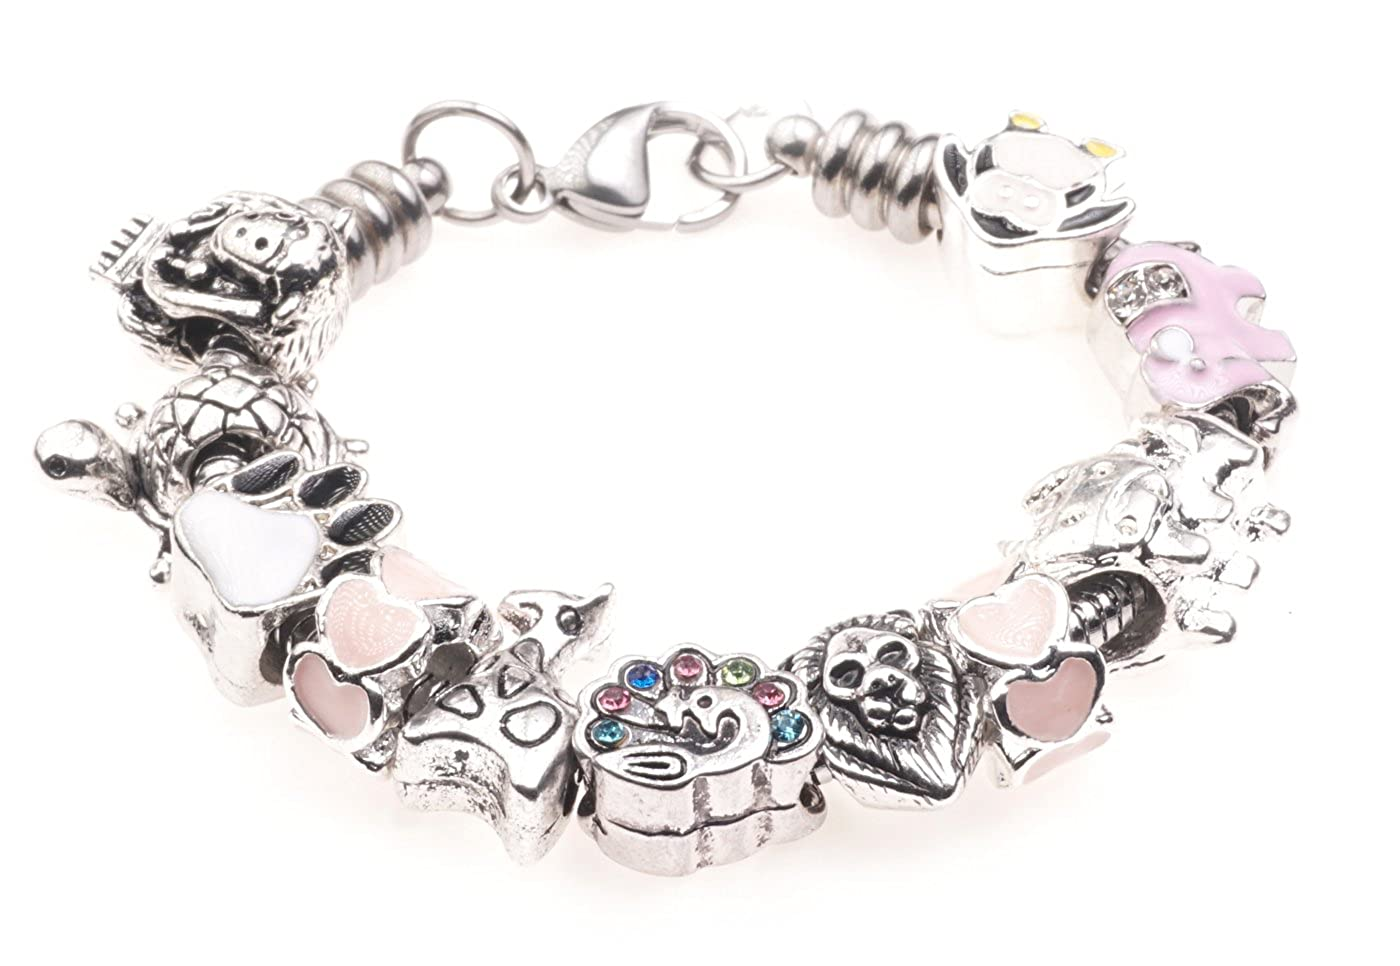 'Monkey Business' Animal Zoo Themed Childrens Charm Bracelet with Gift Box Girls Jewellery Jewellery Hut BRkidsZoo